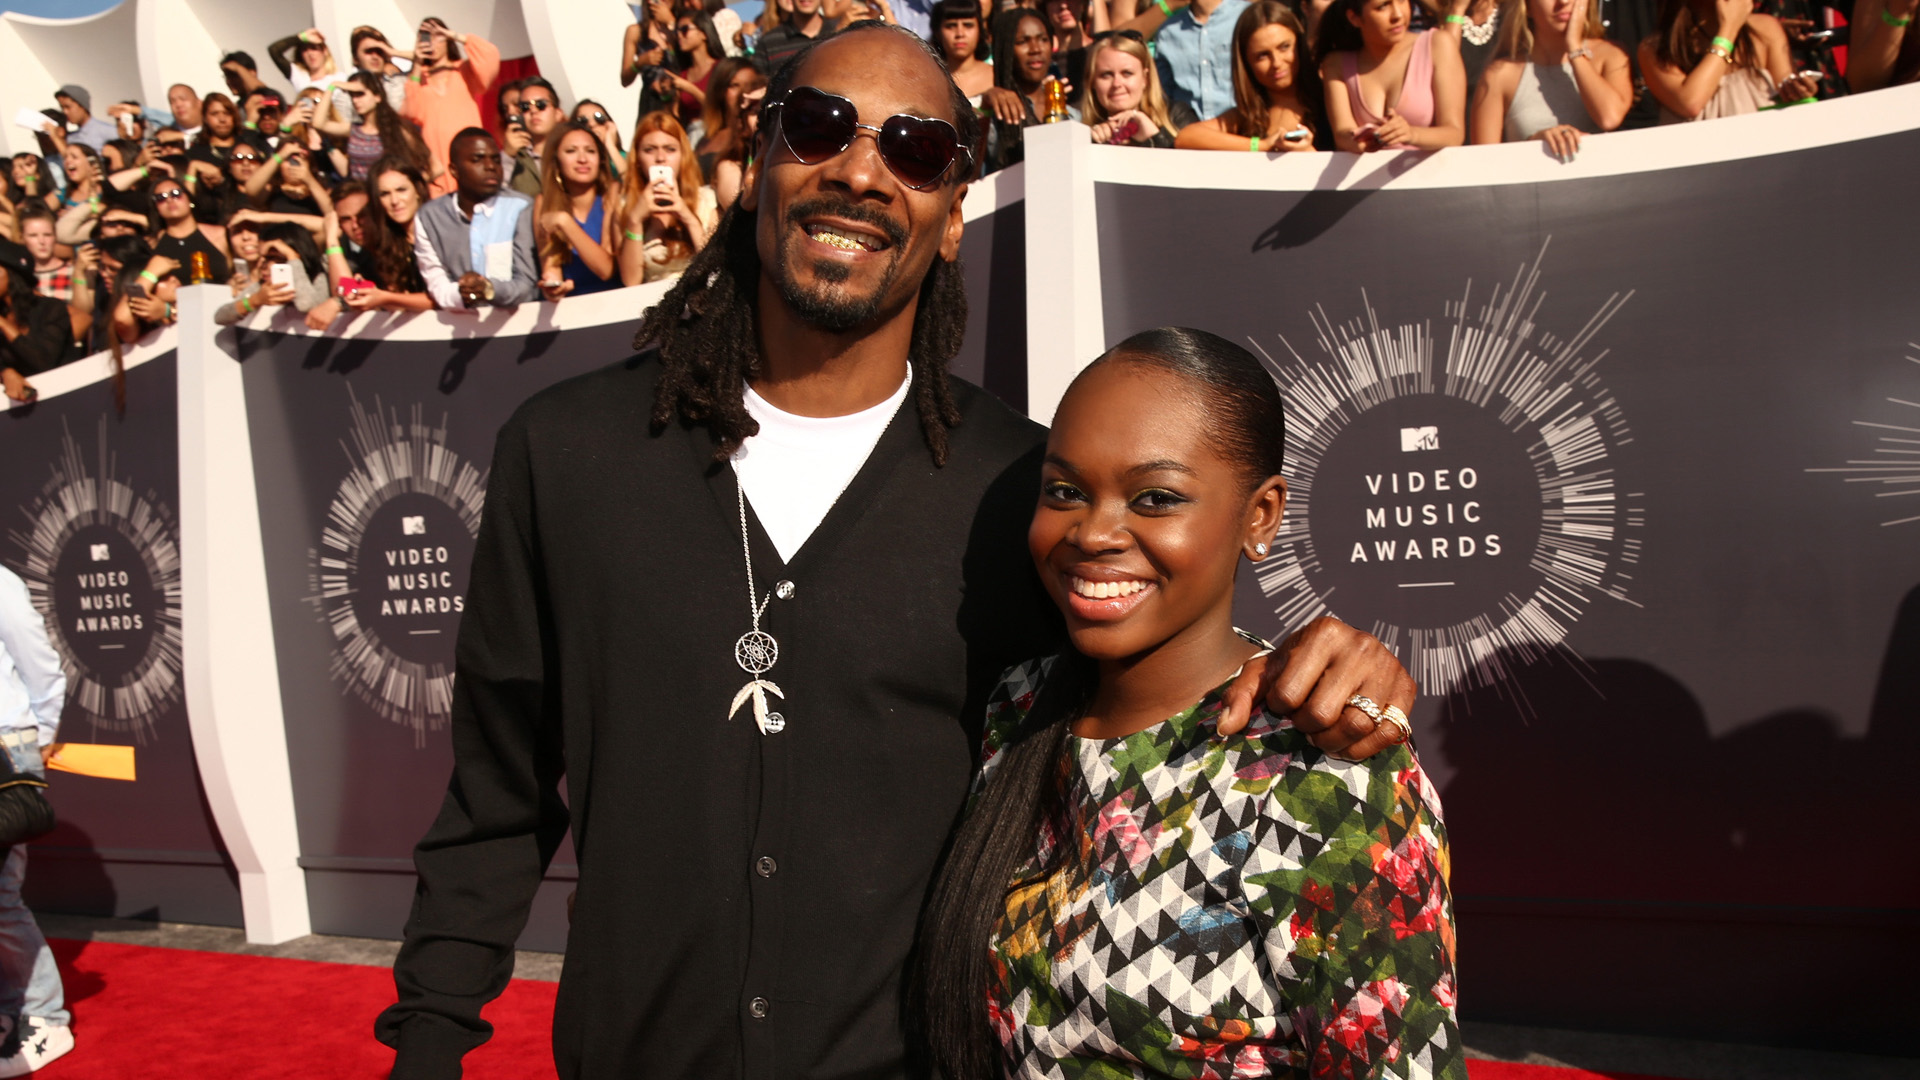 INGLEWOOD, CA - AUGUST 24:  Recording artist Snoop Dogg (L) and Cori Broadus attend the 2014 MTV Video Music Awards at The Fo